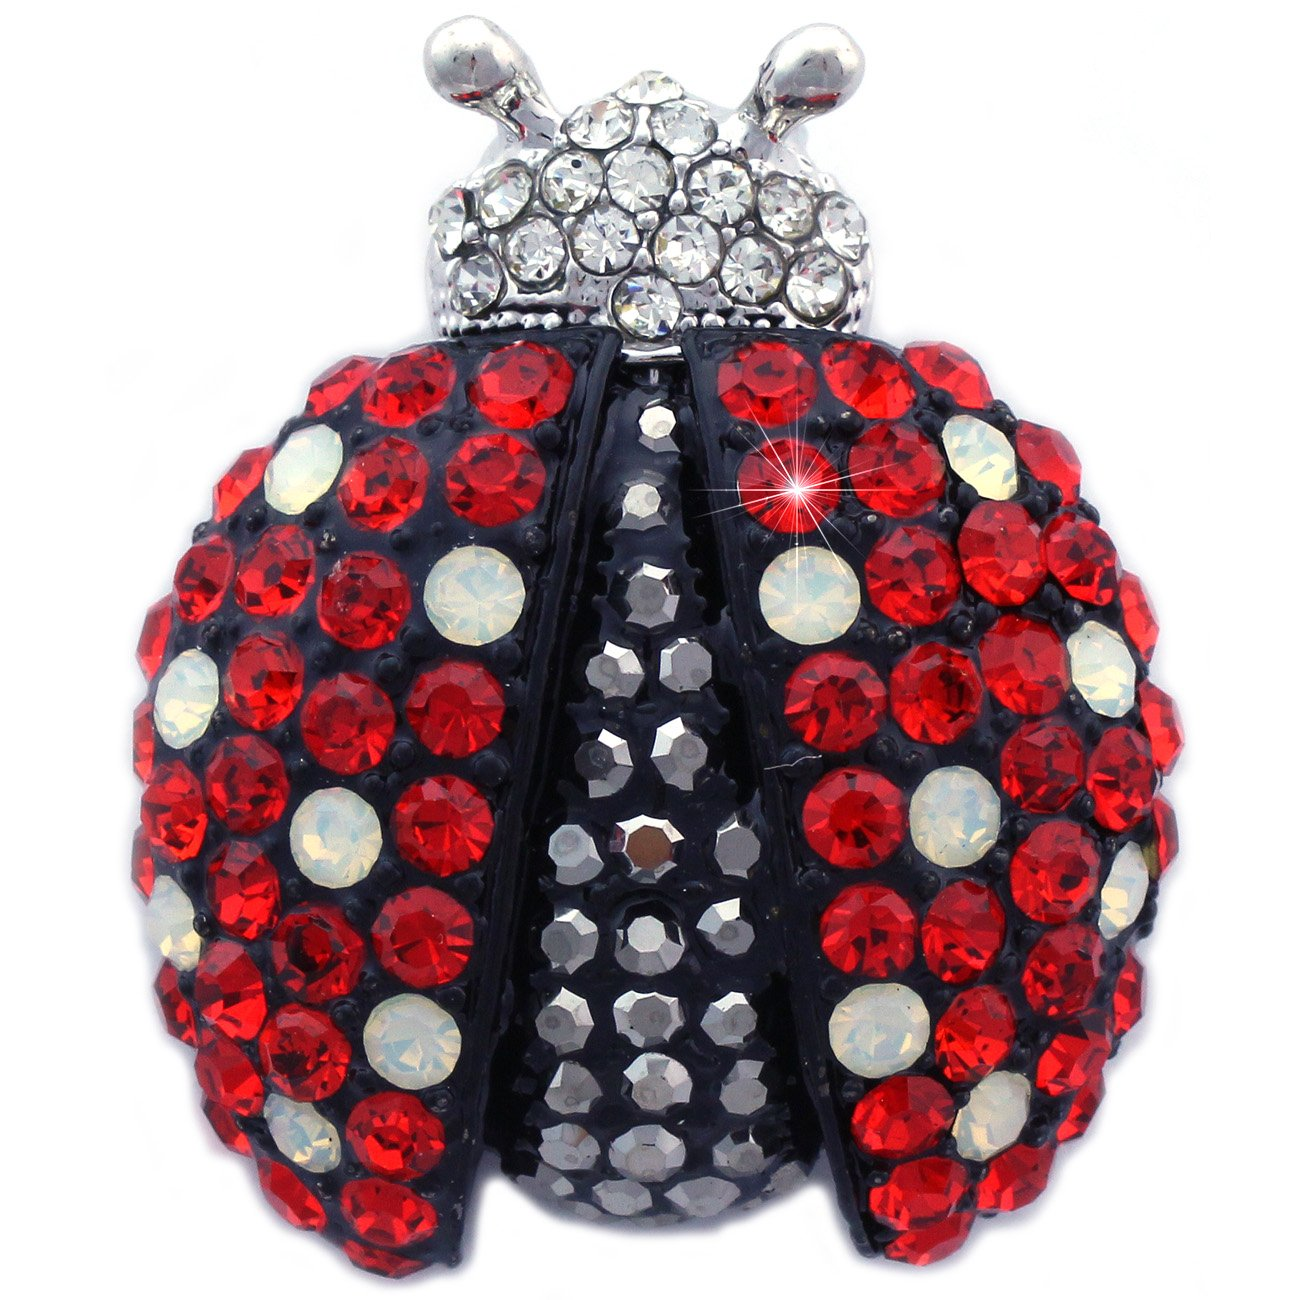 Gorgeous Red Black Ladybug Charm Animal Insect Brooch Pin Women Jewelry